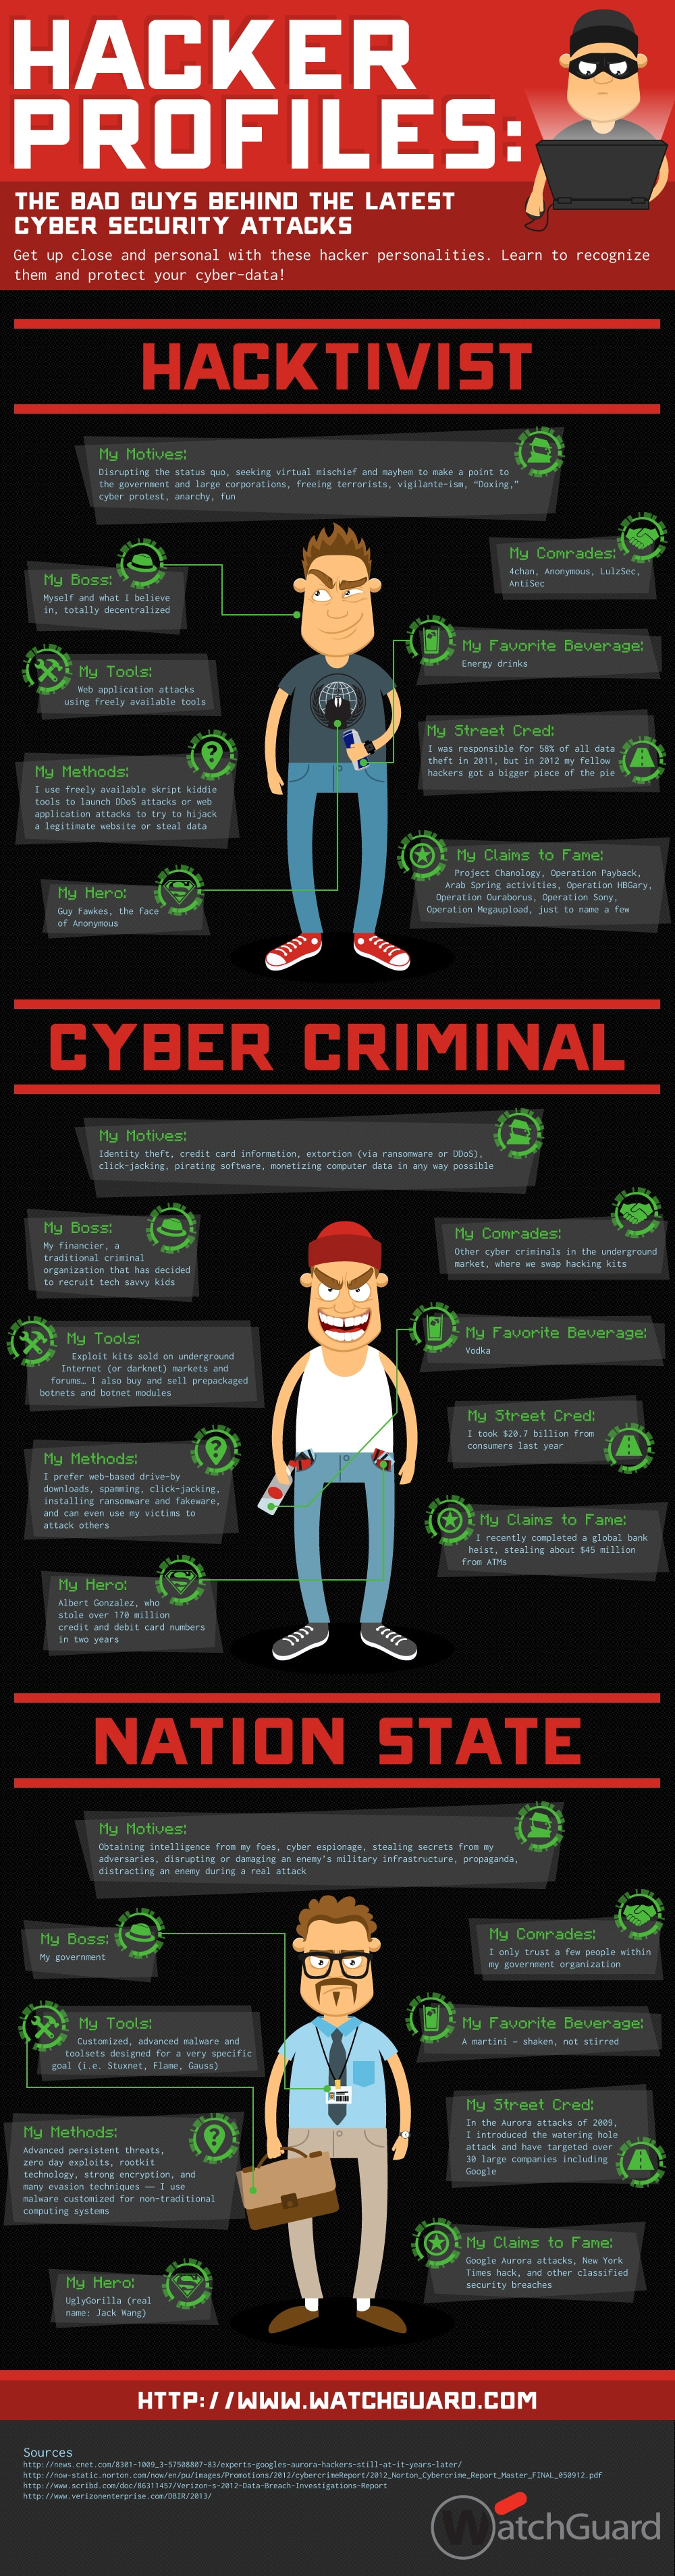 Hacker Profiles – The Bad Guys Of Online Security [Infographic]